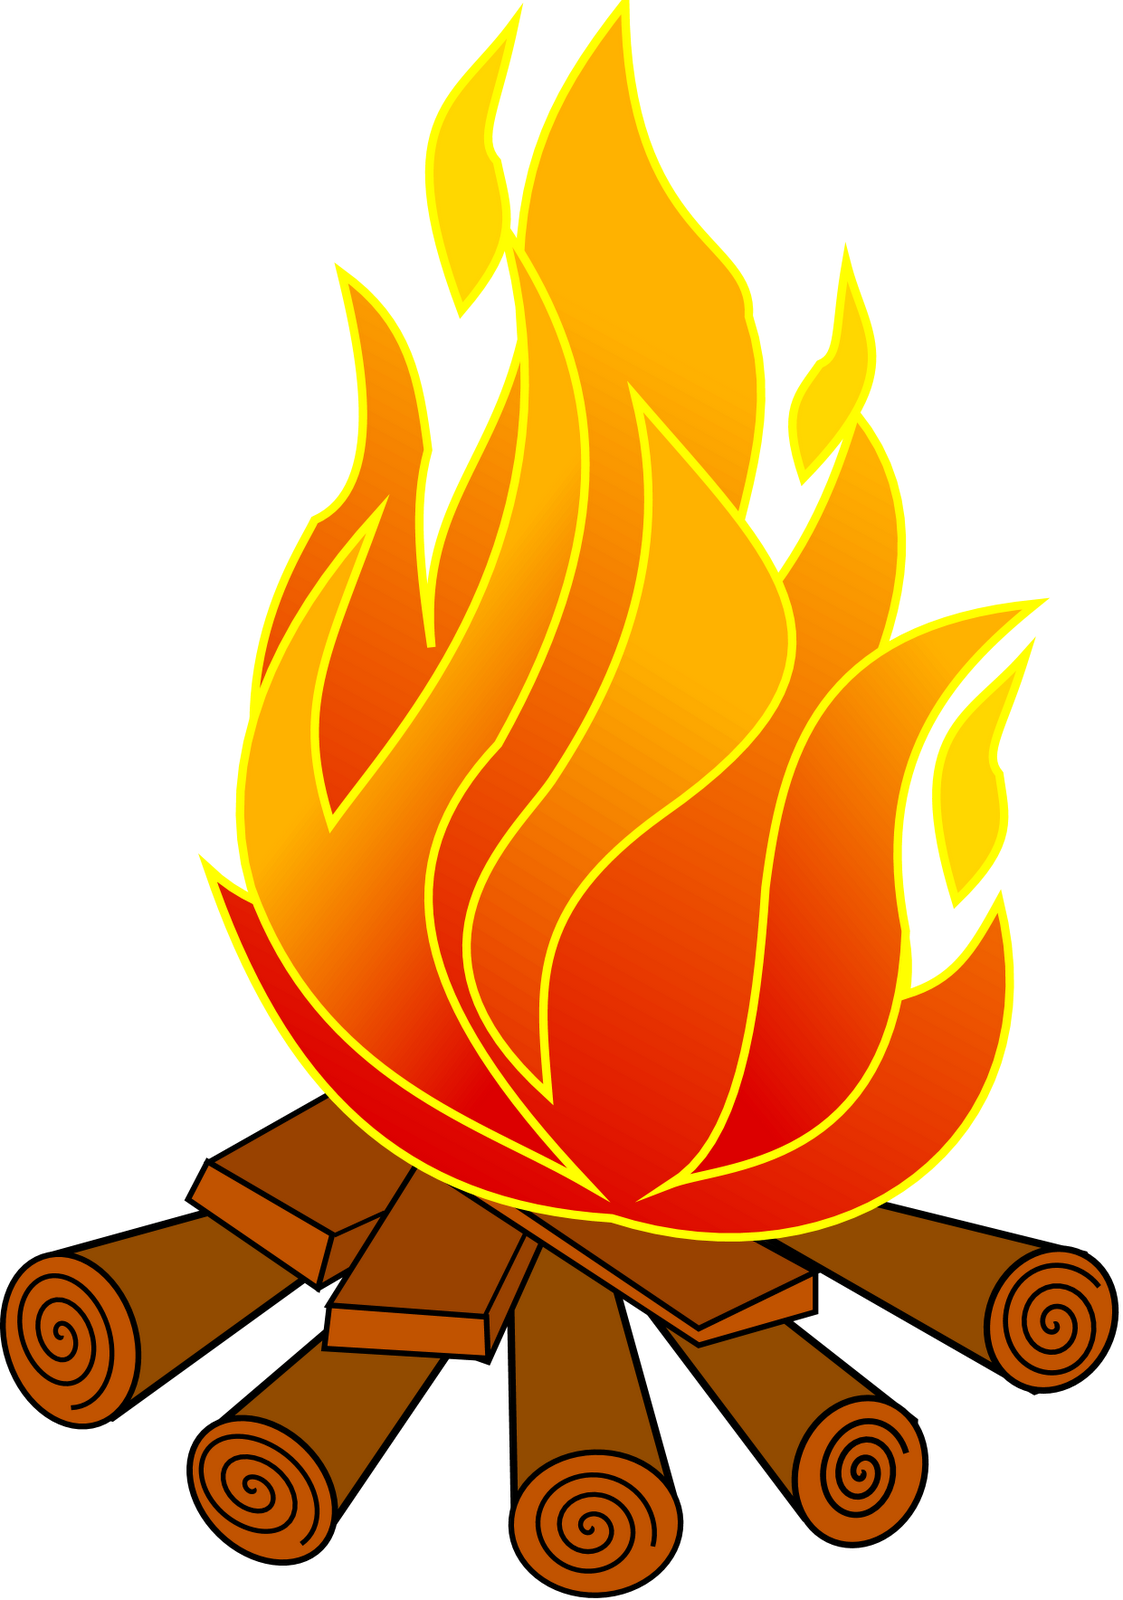 Fire flame cartoon free clipart images 2 – Gclipart.com